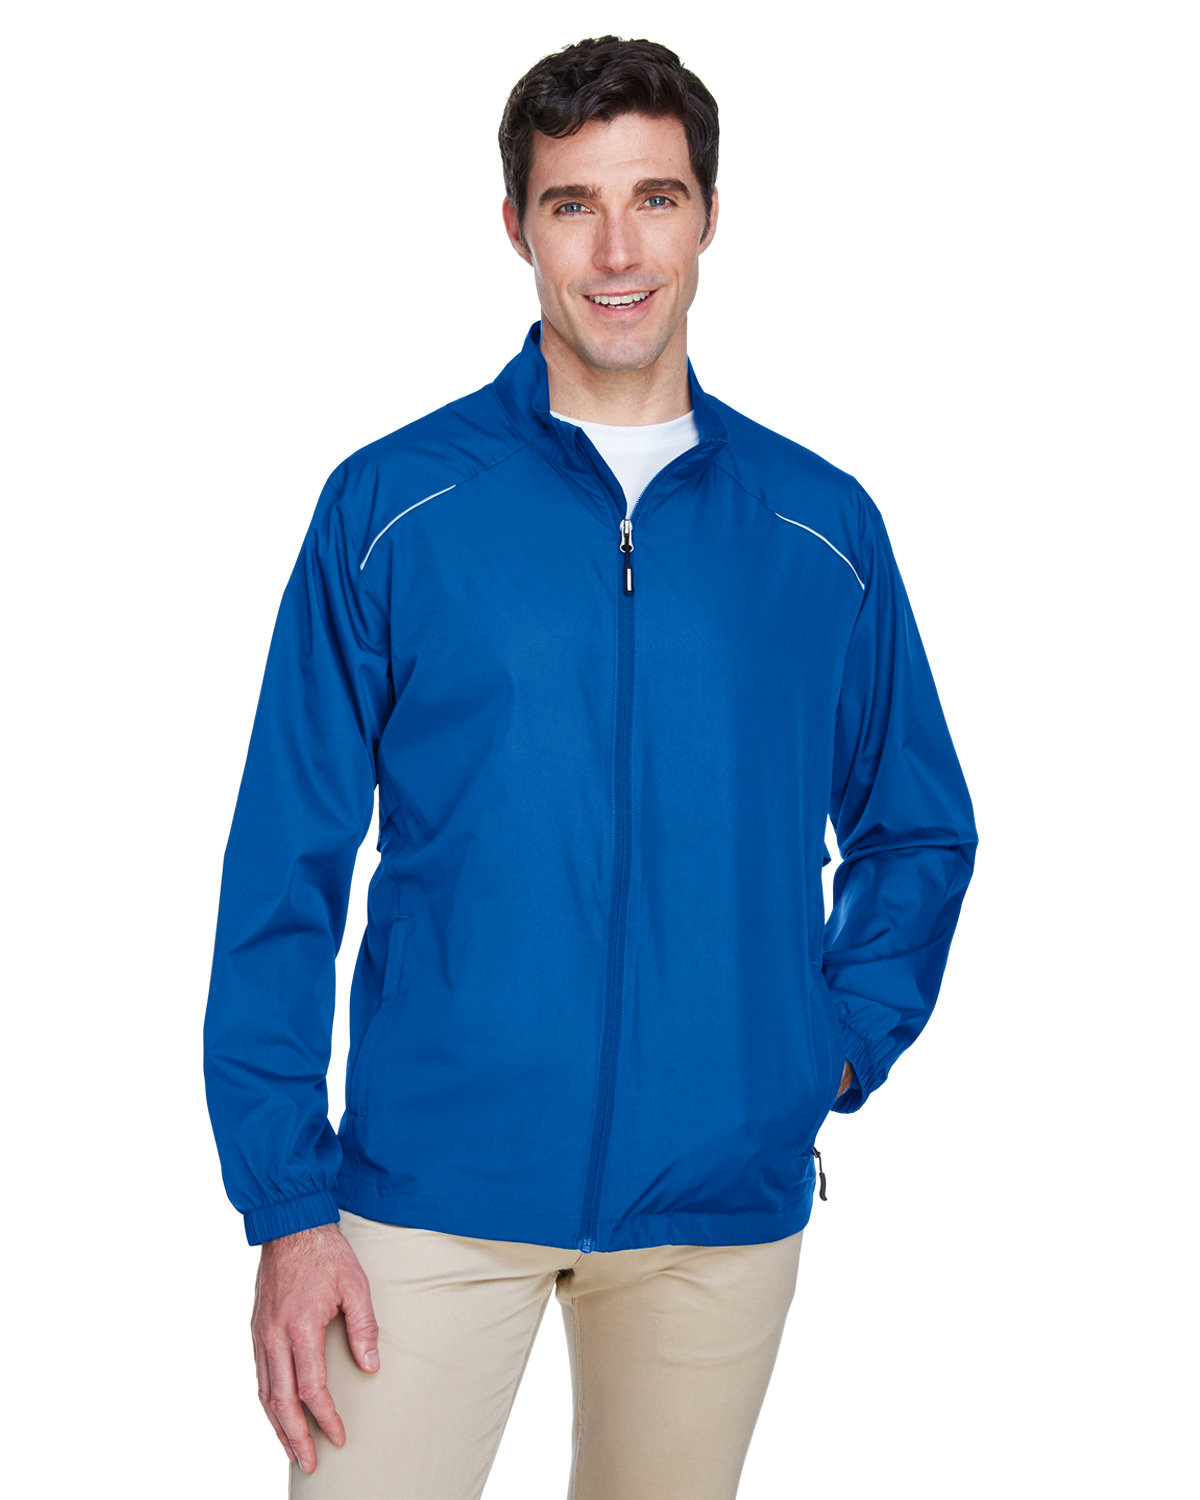 Core 365 Men's Motivate Unlined Lightweight Jacket TRUE ROYAL